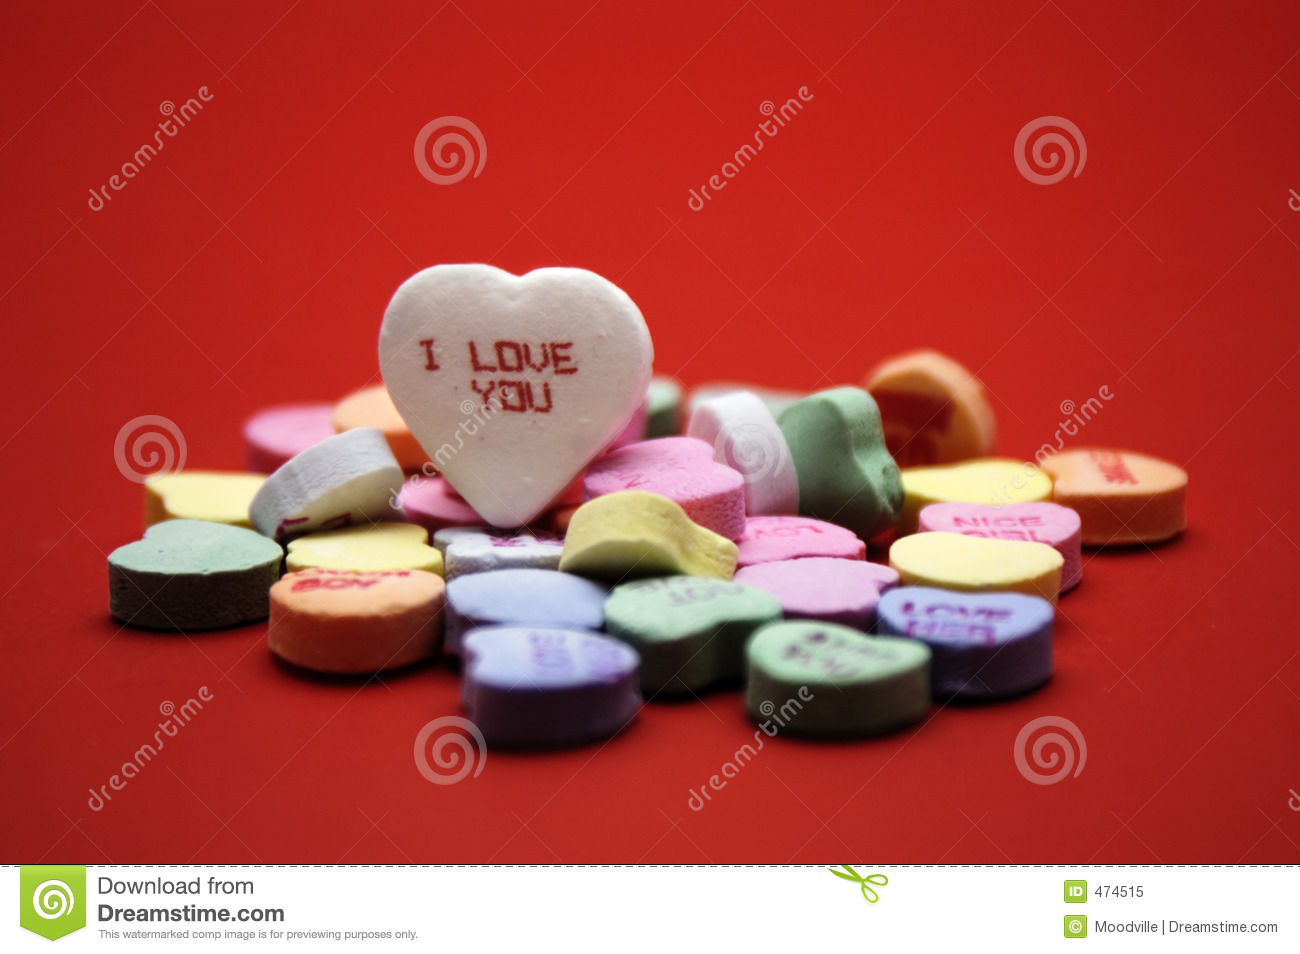 Pictures of candy heart messages The Sweet History of Valentine's Conversation Hearts Better